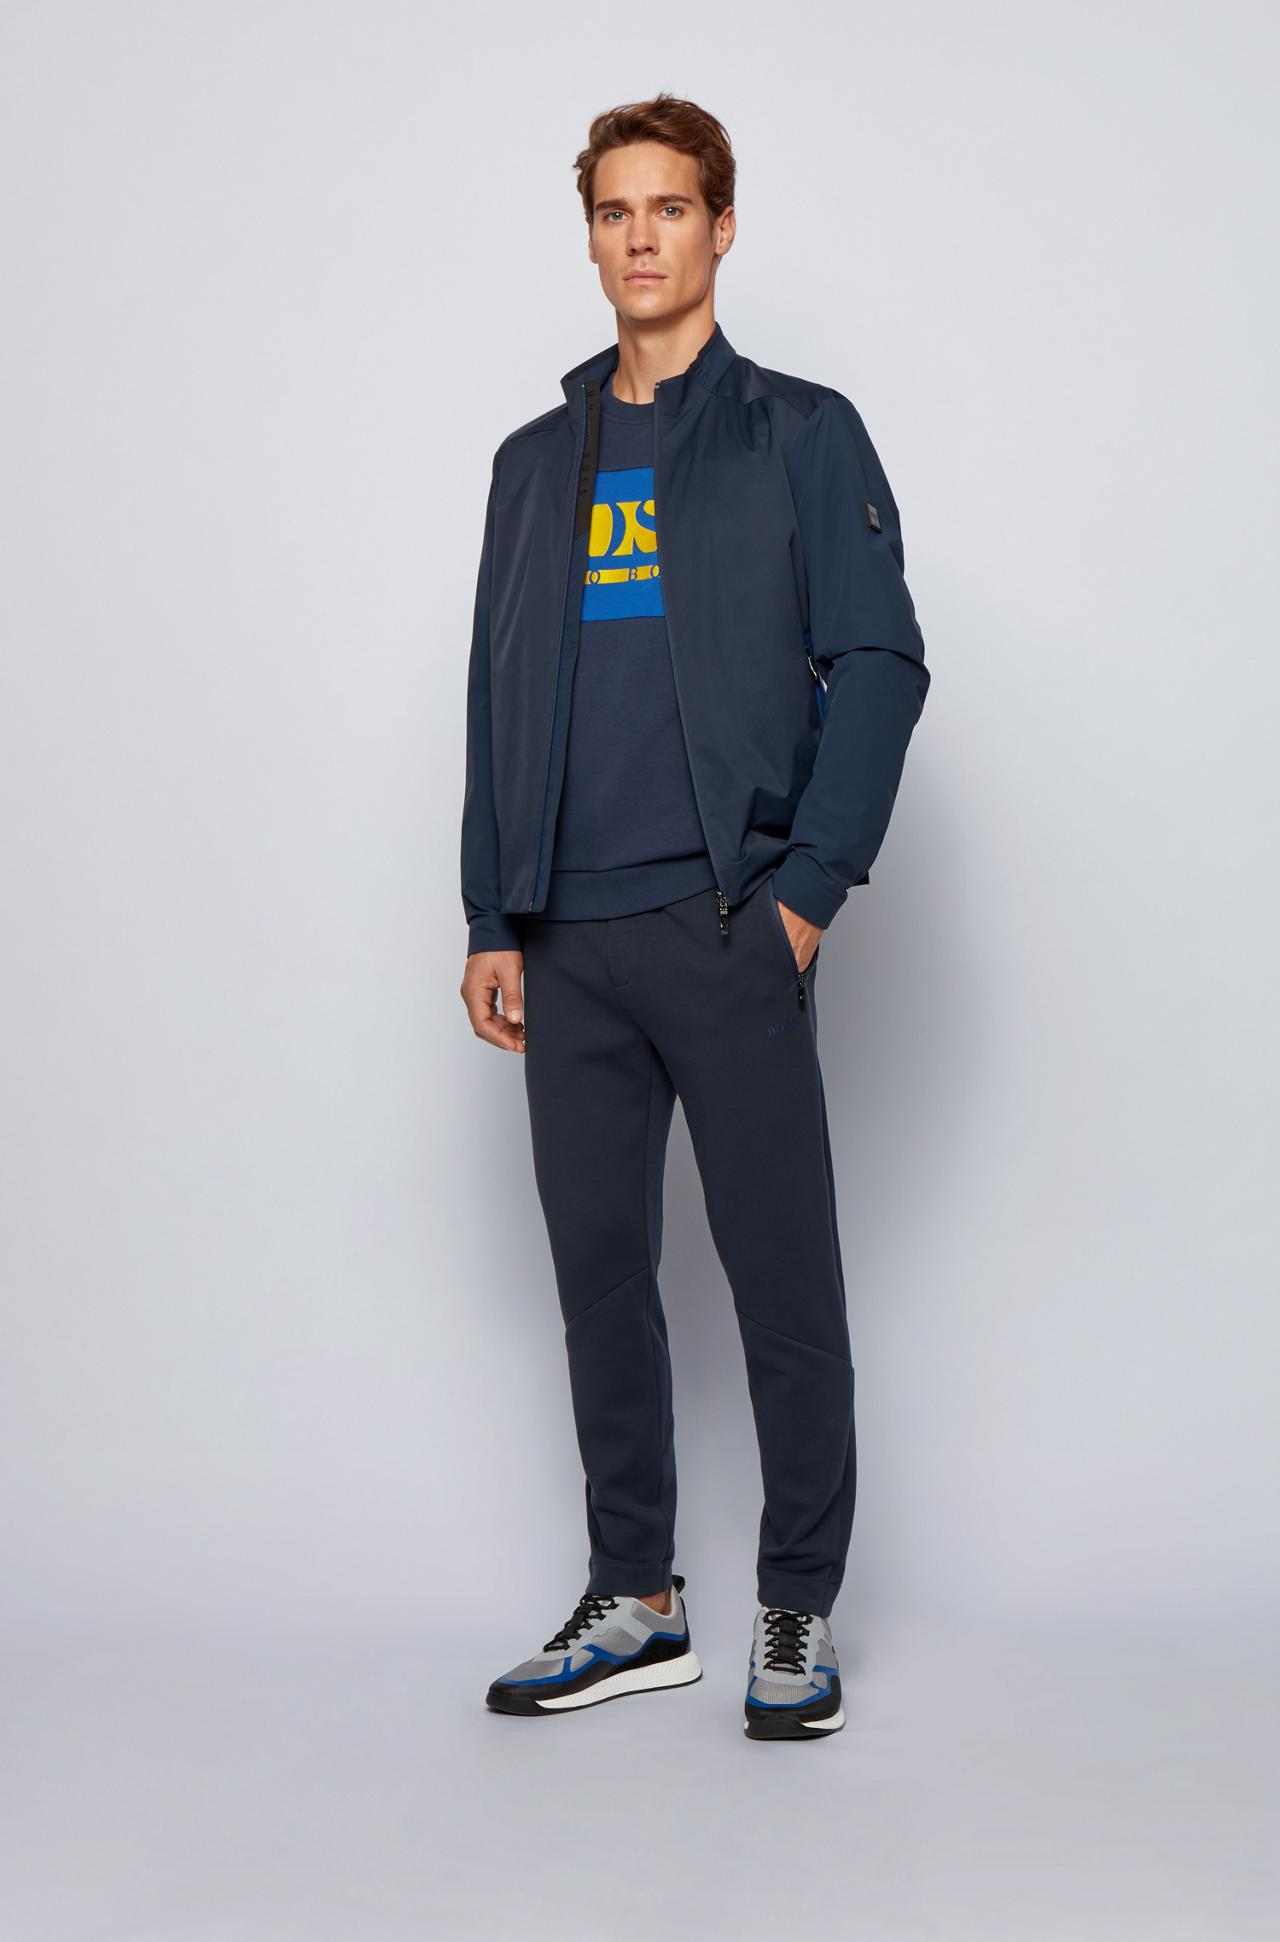 HUGO BOSS: Up to 50% off sale styles + extra 20% off